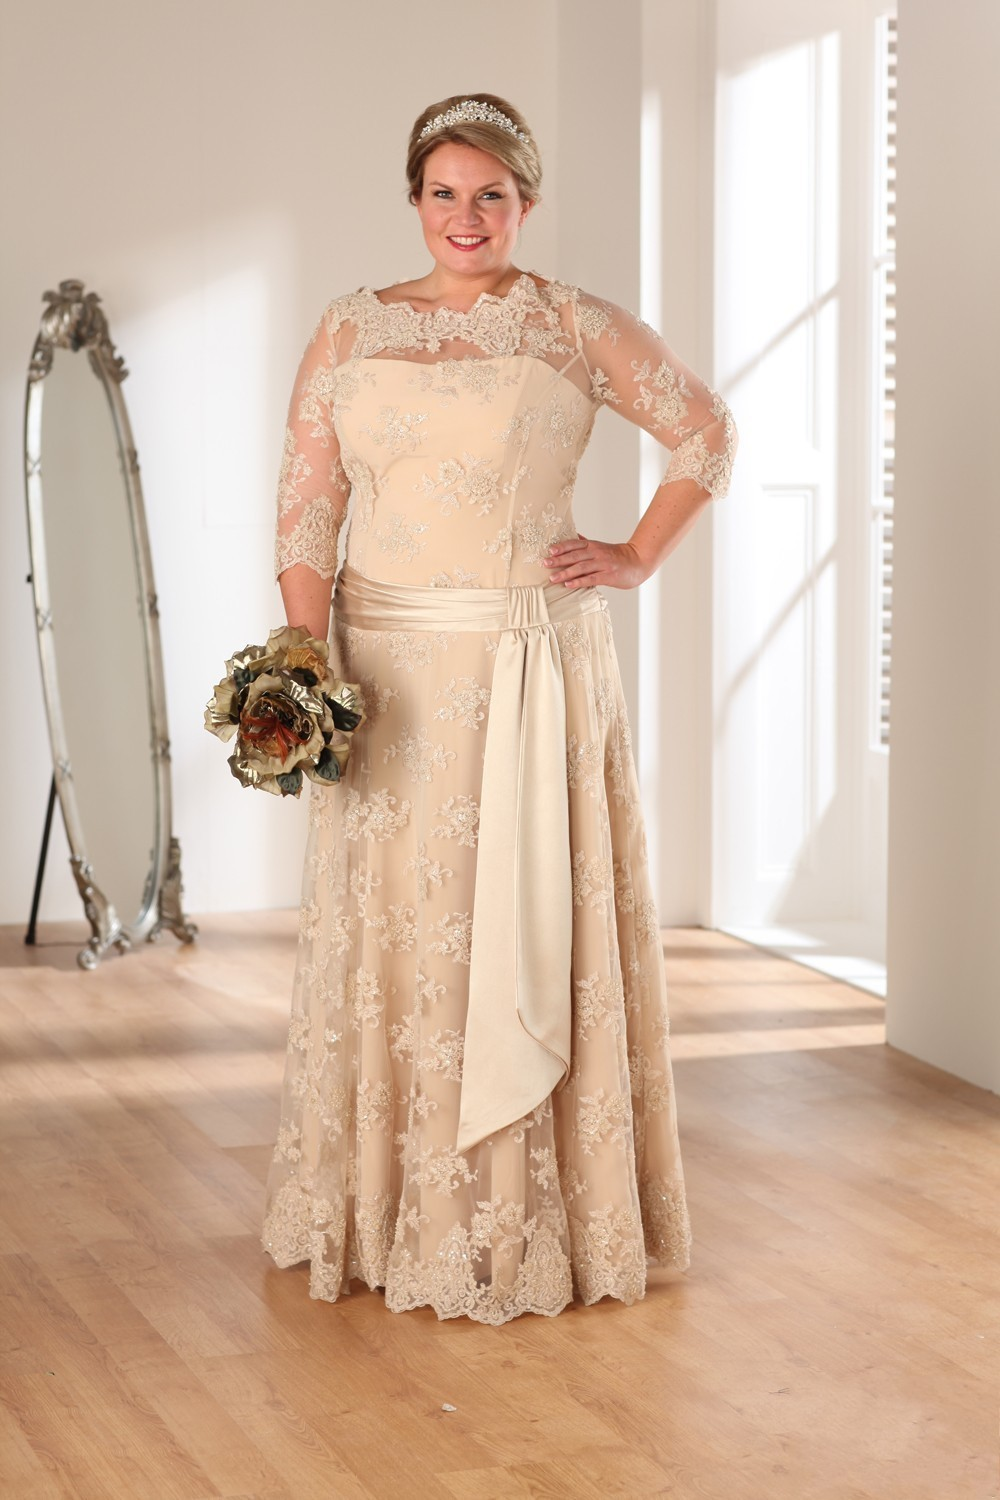 Champagne colored wedding dresses with sleeveswedding champagne colored wedding dresses with sleeves ombrellifo Choice Image